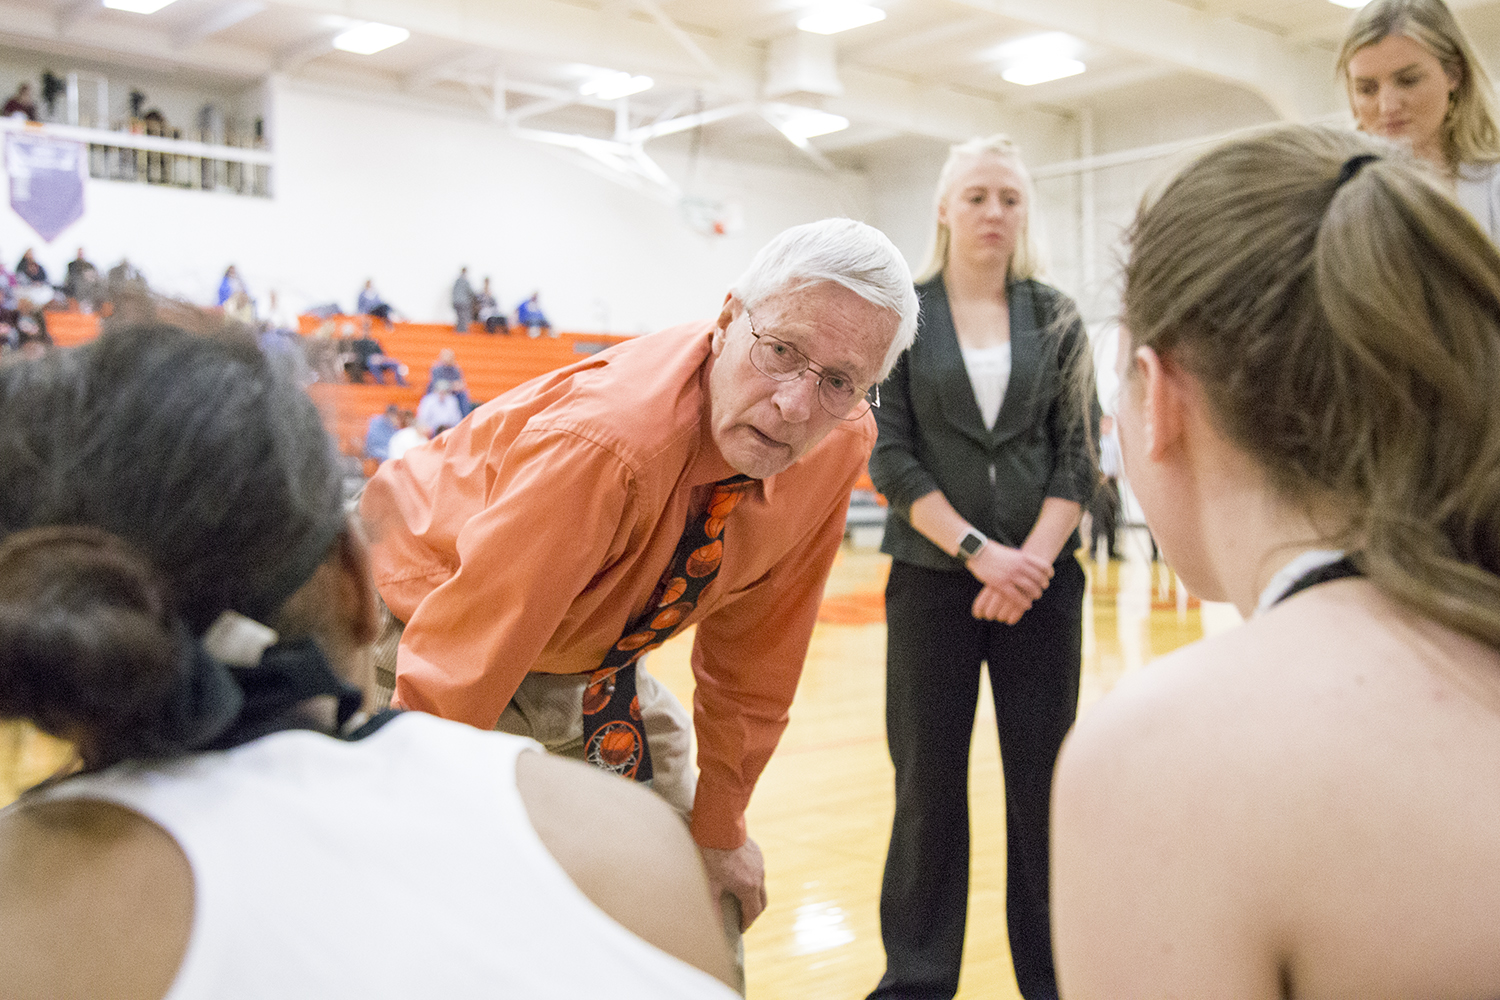 Coach Ken Swartz talks to his women's basketball team on the sidelines of a basketball game